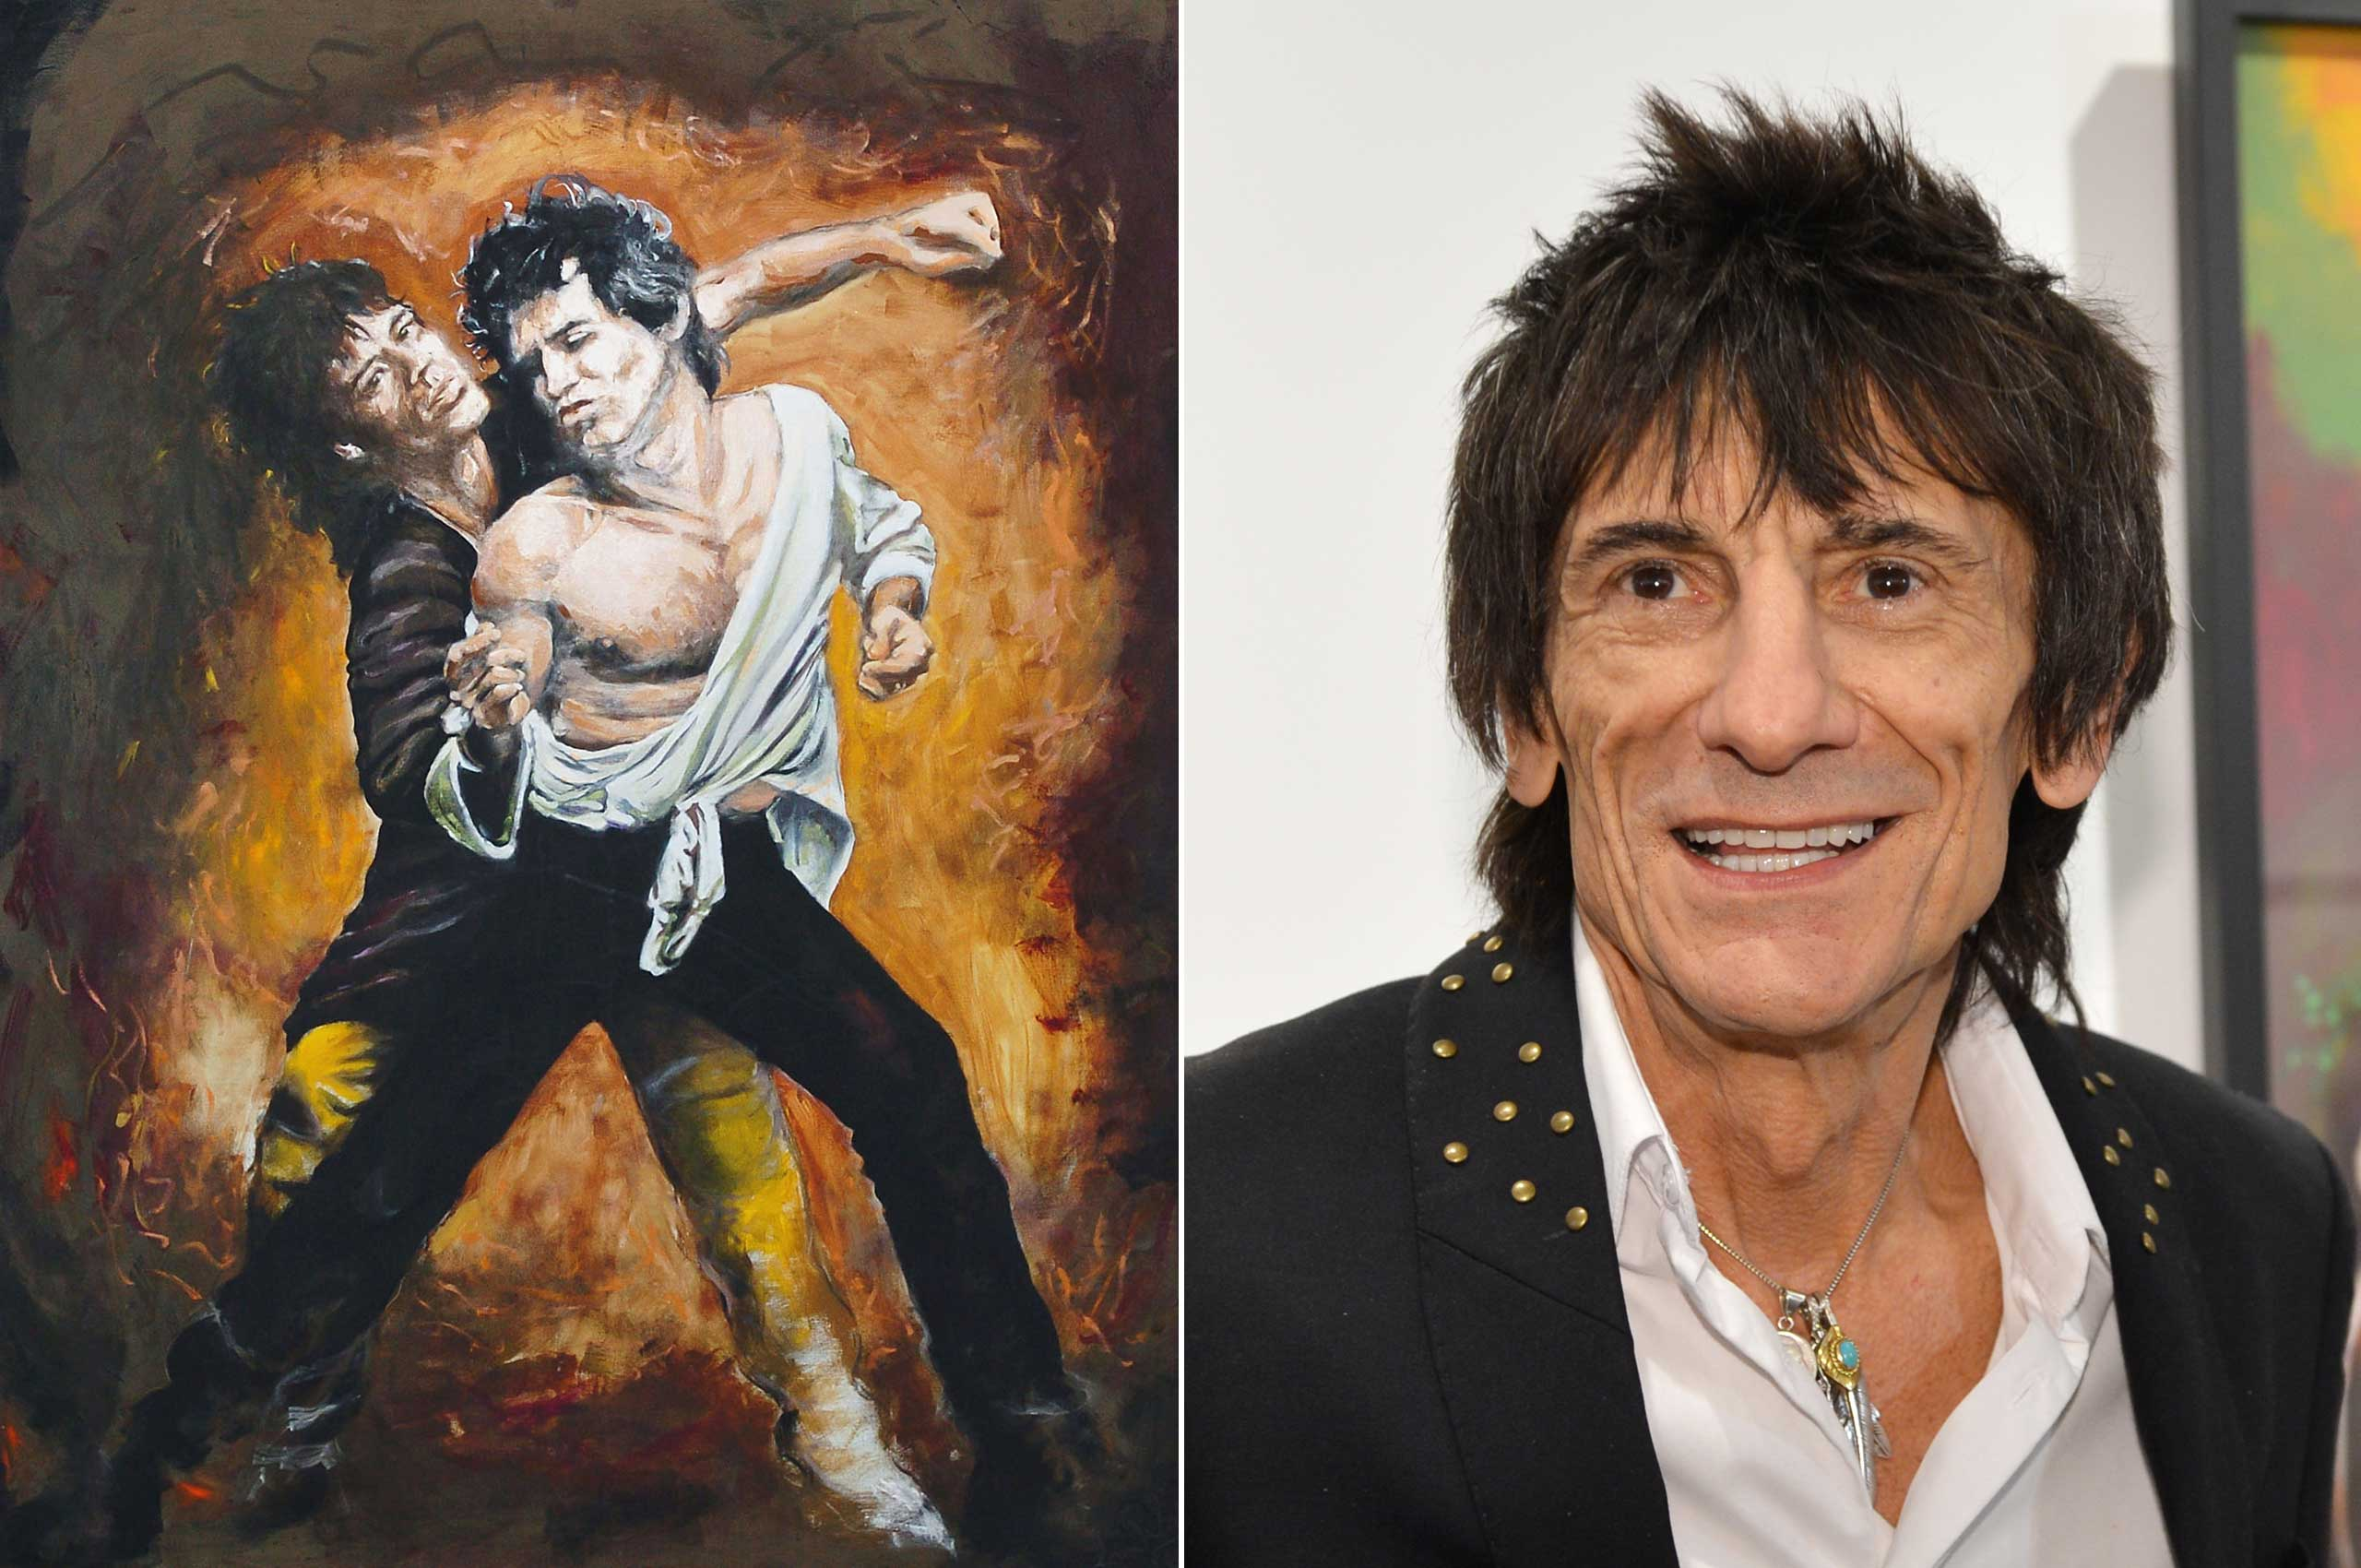 Rolling Stones guitarist Ronnie Wood created this painting of his bandmates Mick Jagger and Keith Richards.